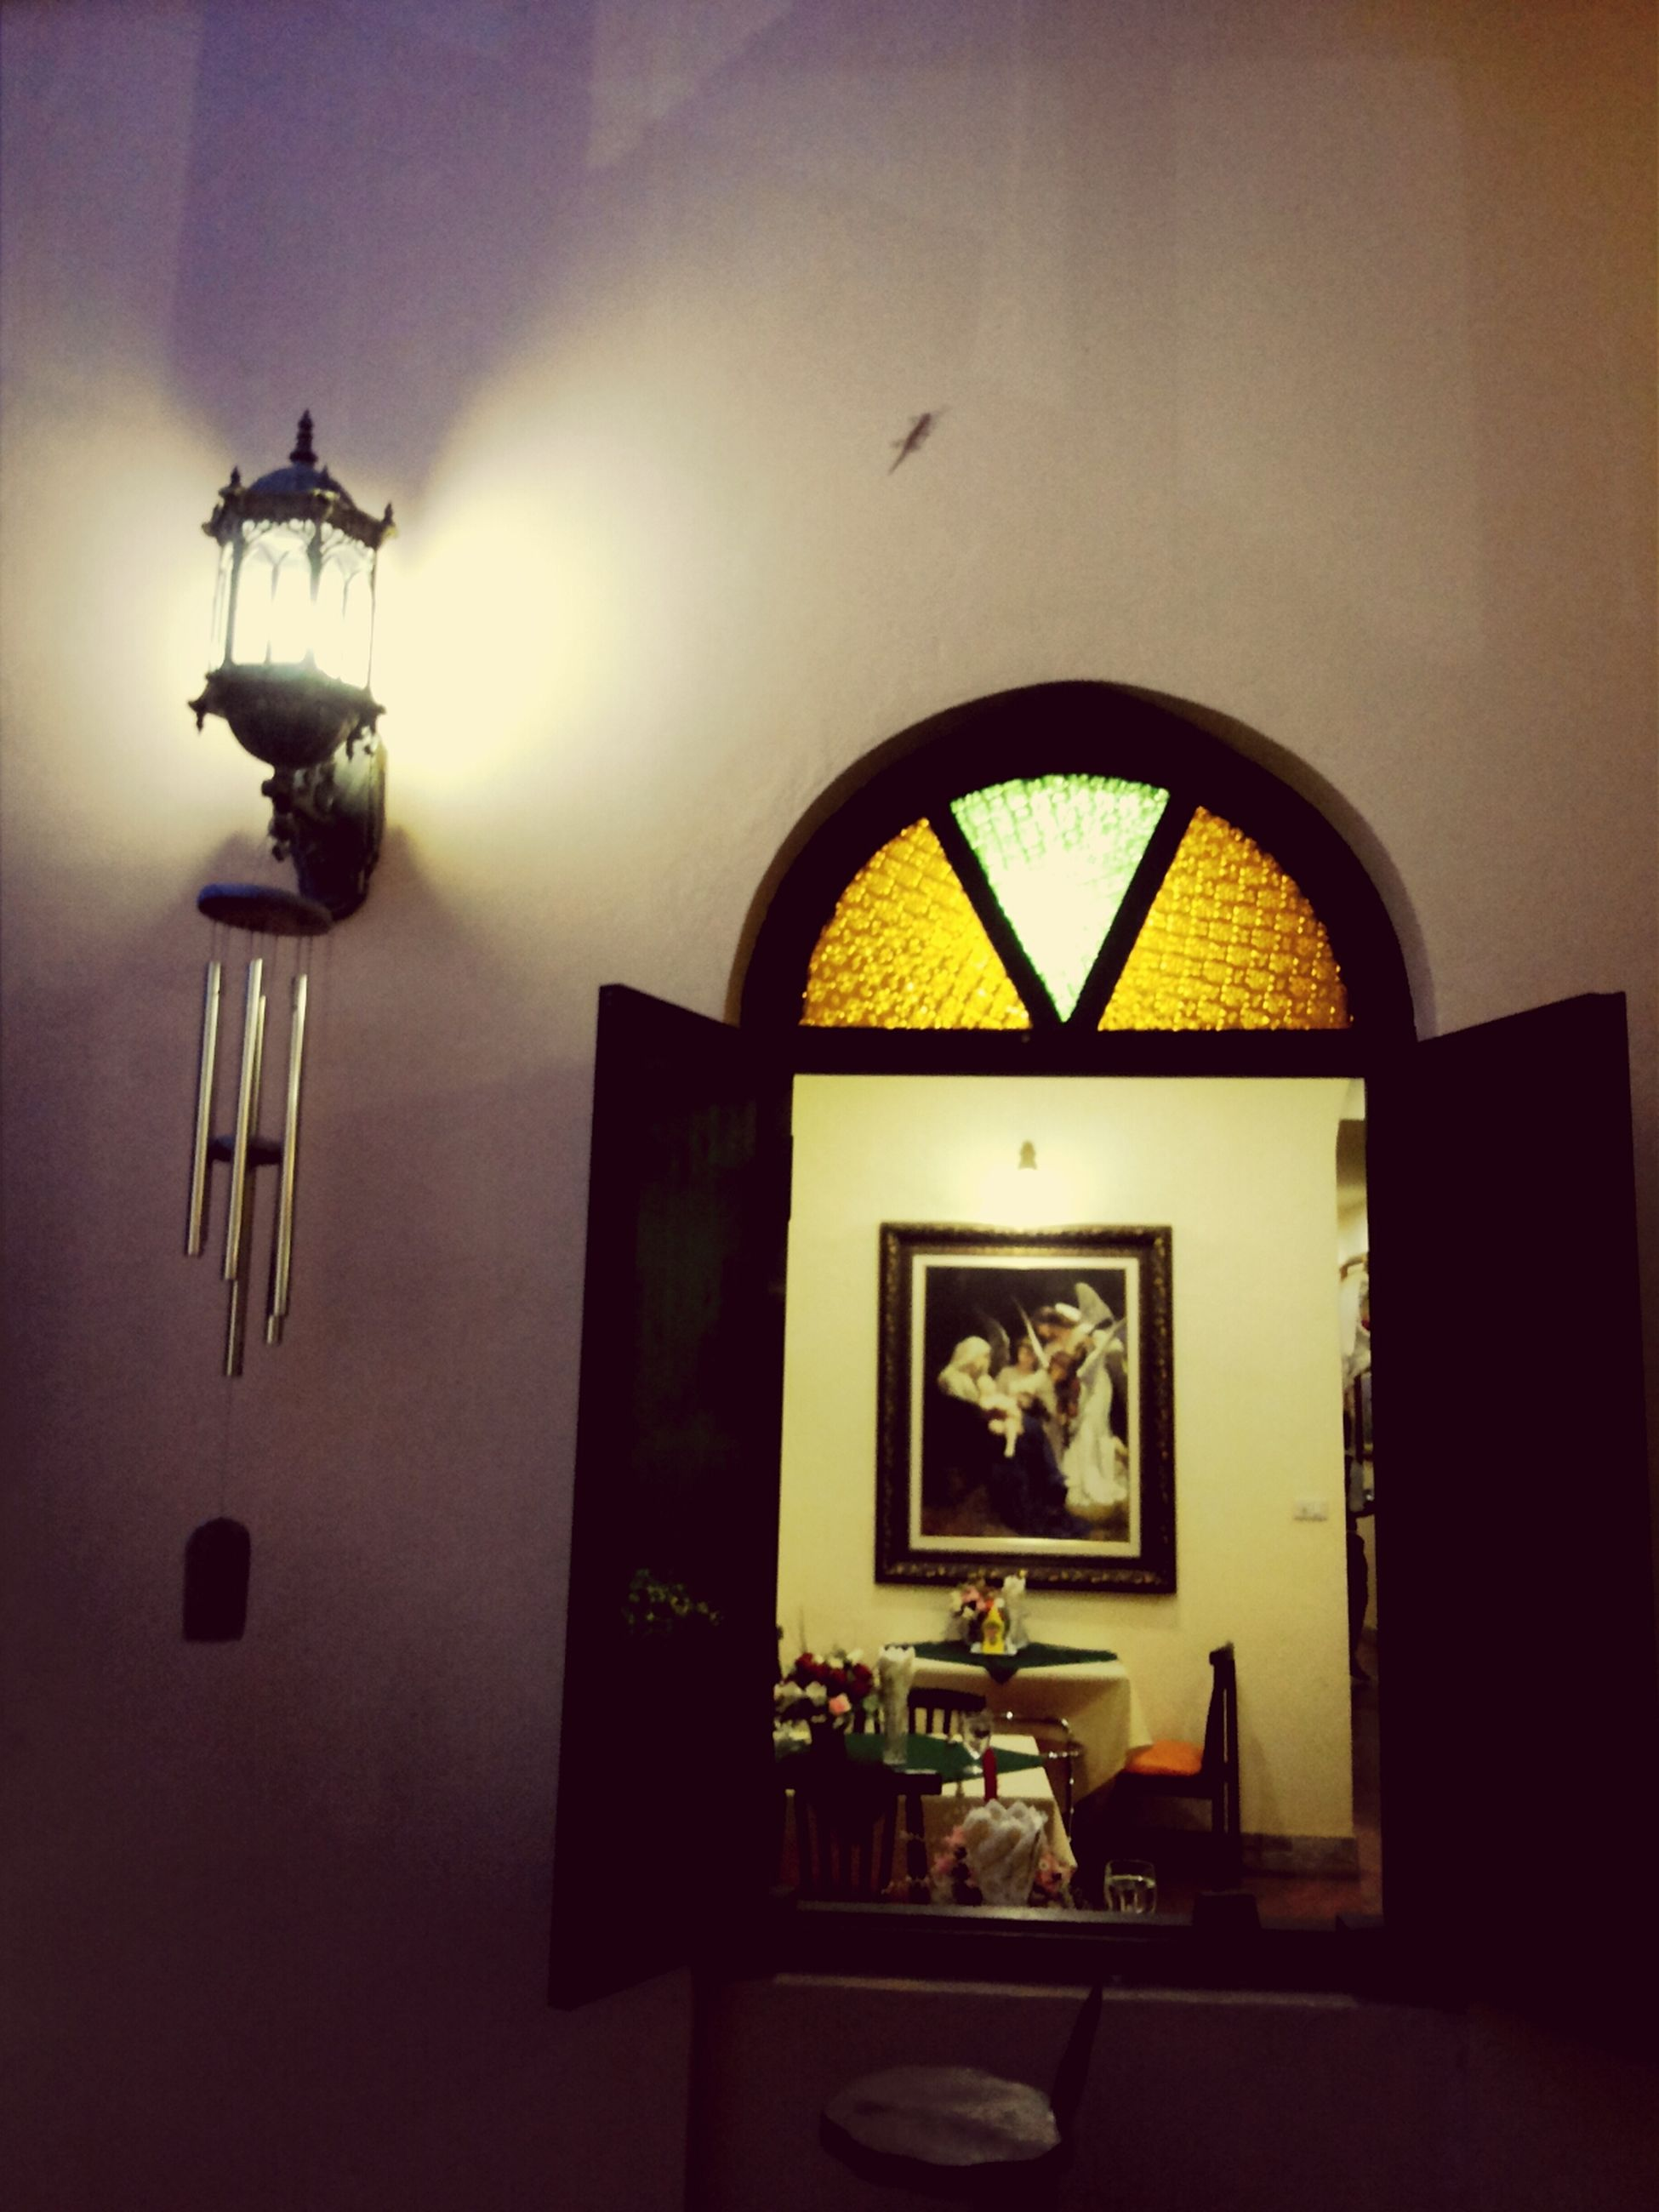 indoors, lighting equipment, electric lamp, illuminated, lamp, architecture, built structure, home interior, wall - building feature, hanging, window, lantern, low angle view, no people, wall, ceiling, house, electric light, old-fashioned, table